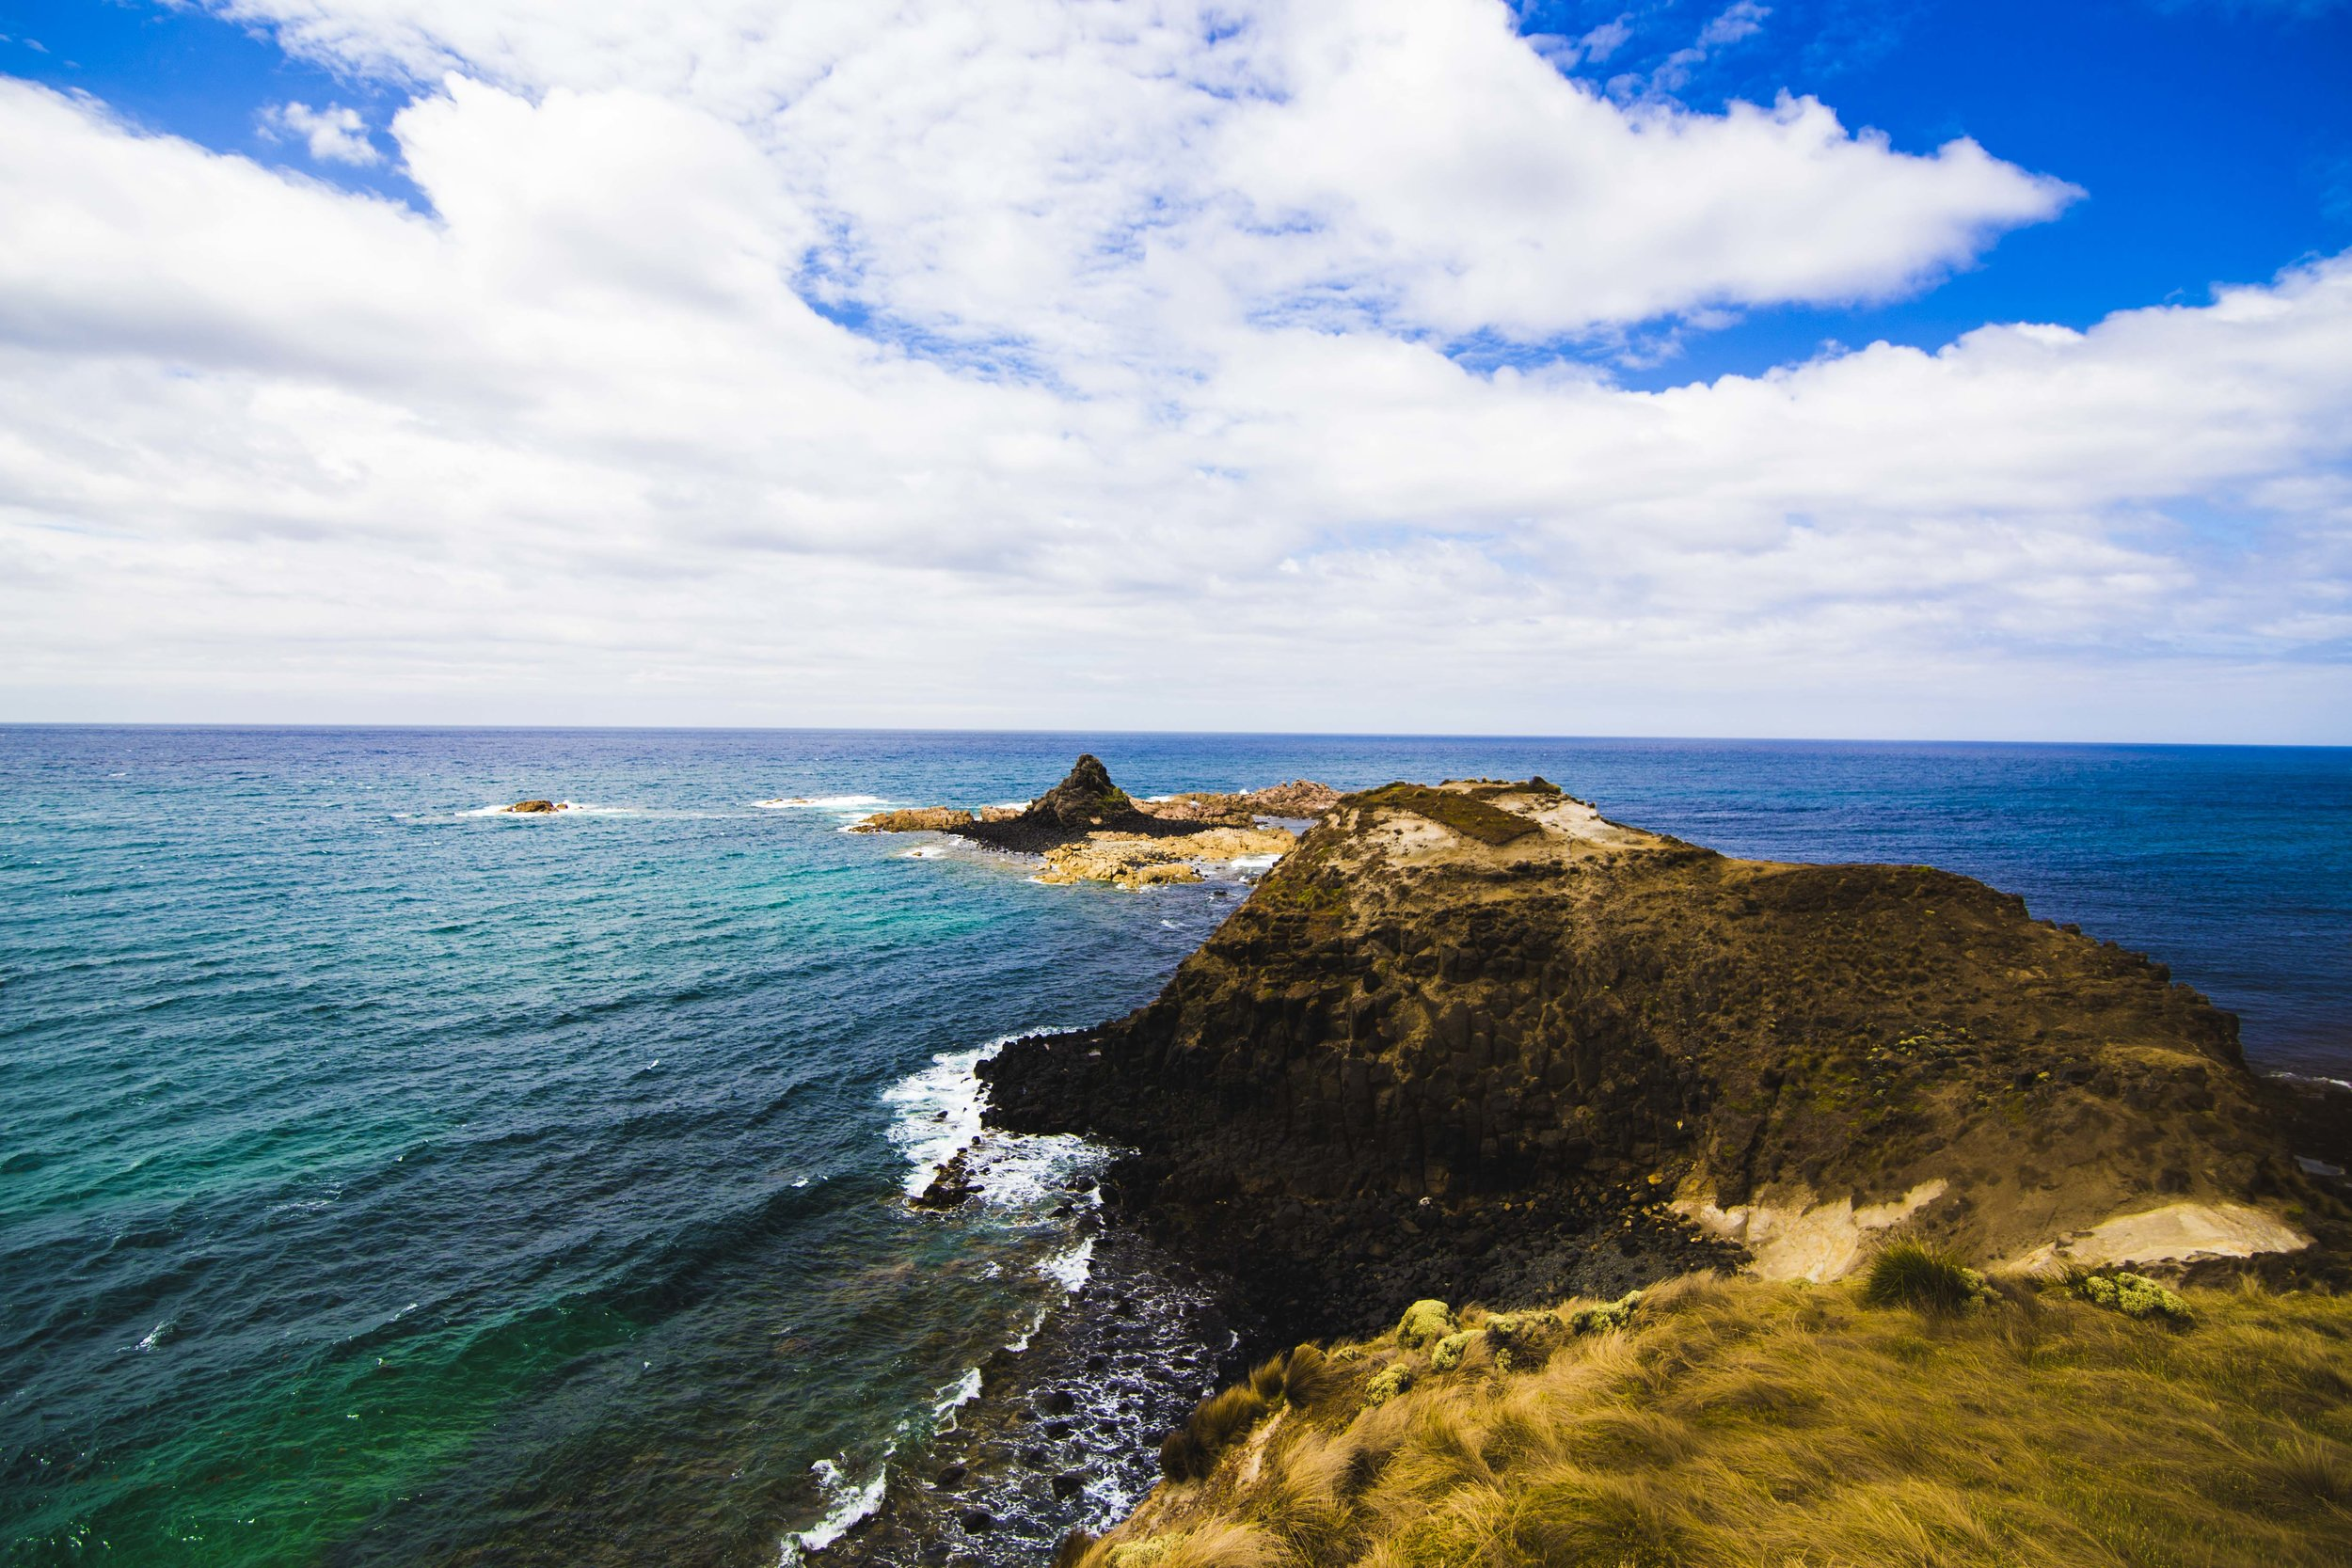 Pyramid Rock in Phillip Island. Photo: Marine Raynard